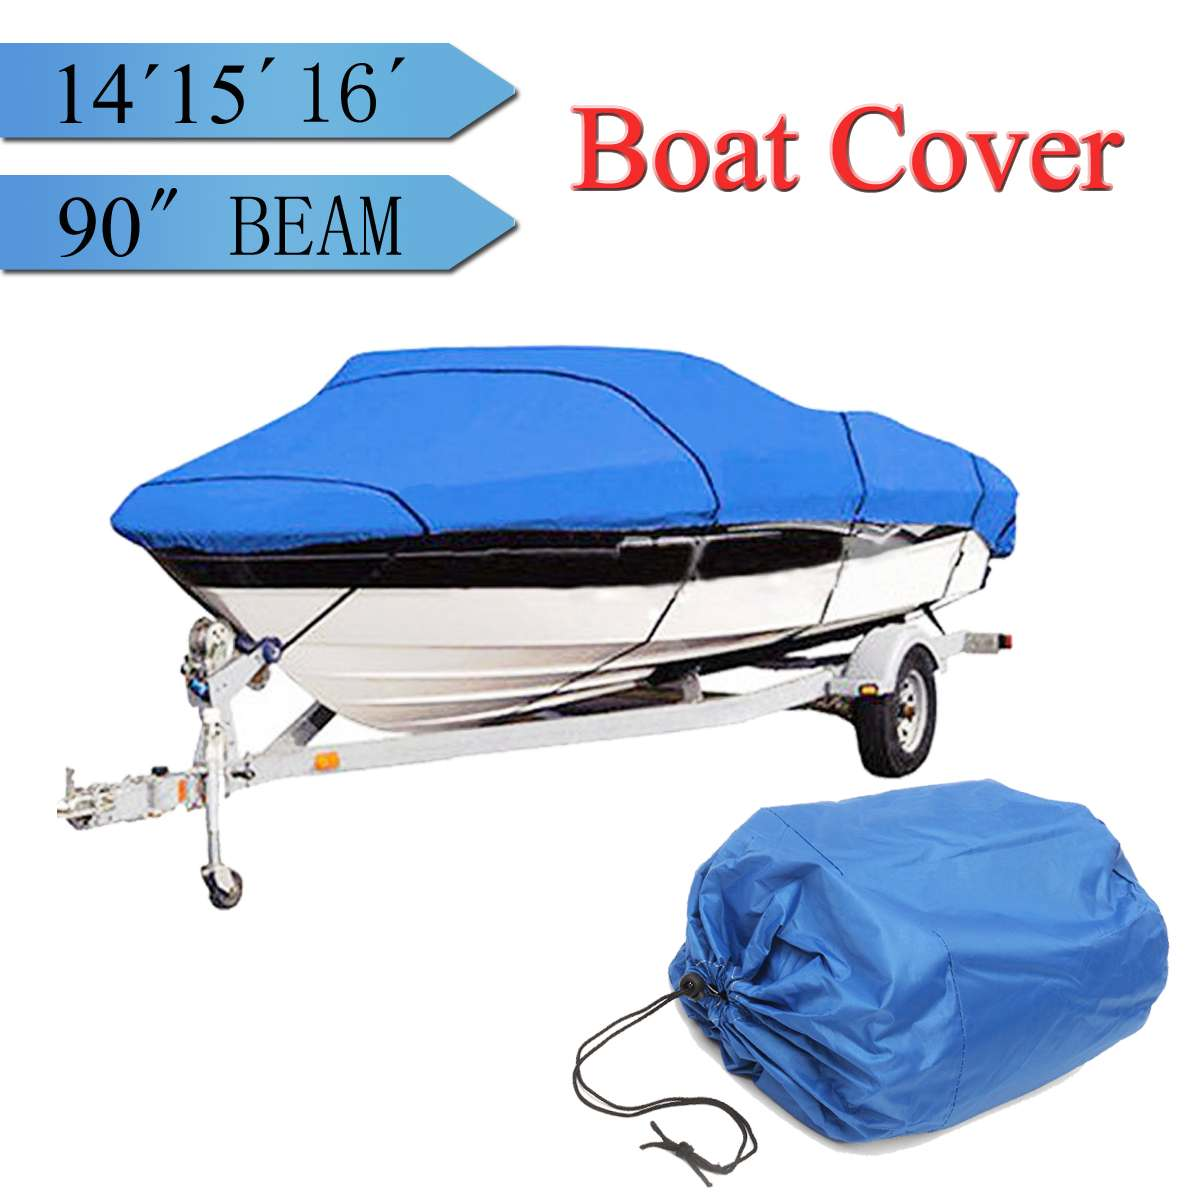 Blue Heavy   14 15 16ft Beam 90inch Trailerable 210D Marine Grade Boat Cover Waterproof UV Protected with Carrying BagBlue Heavy   14 15 16ft Beam 90inch Trailerable 210D Marine Grade Boat Cover Waterproof UV Protected with Carrying Bag